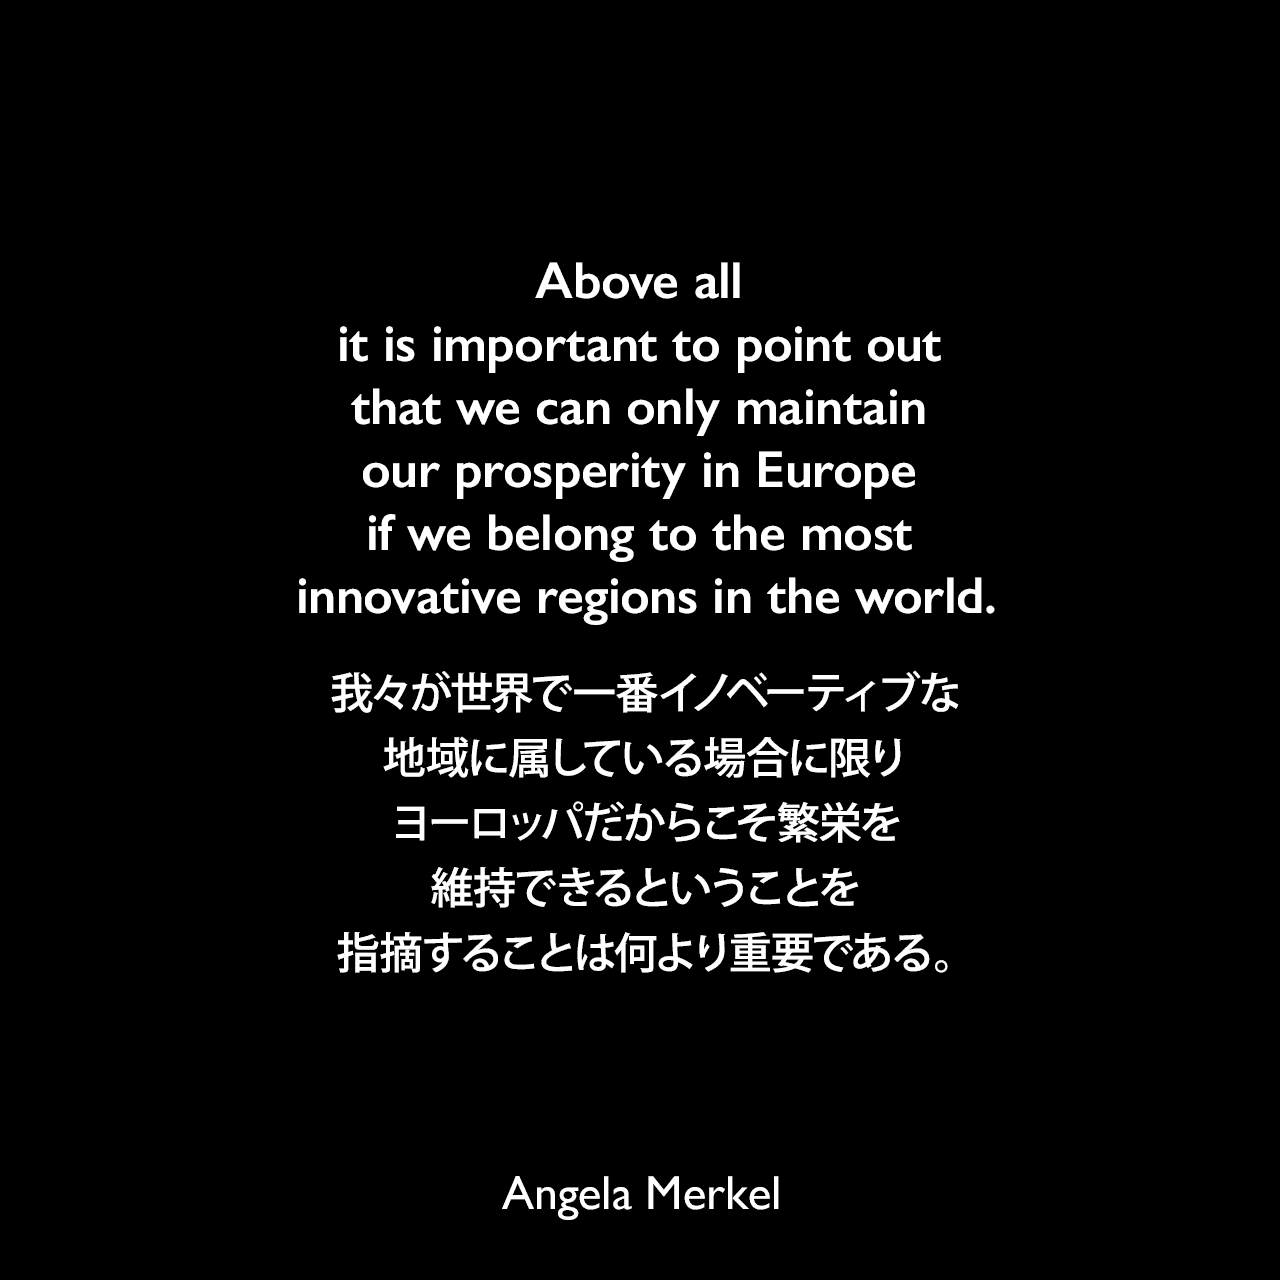 Above all it is important to point out that we can only maintain our prosperity in Europe if we belong to the most innovative regions in the world.我々が世界で一番イノベーティブな地域に属している場合に限り、ヨーロッパだからこそ繁栄を維持できるということを指摘することは何より重要である。Angela Merkel